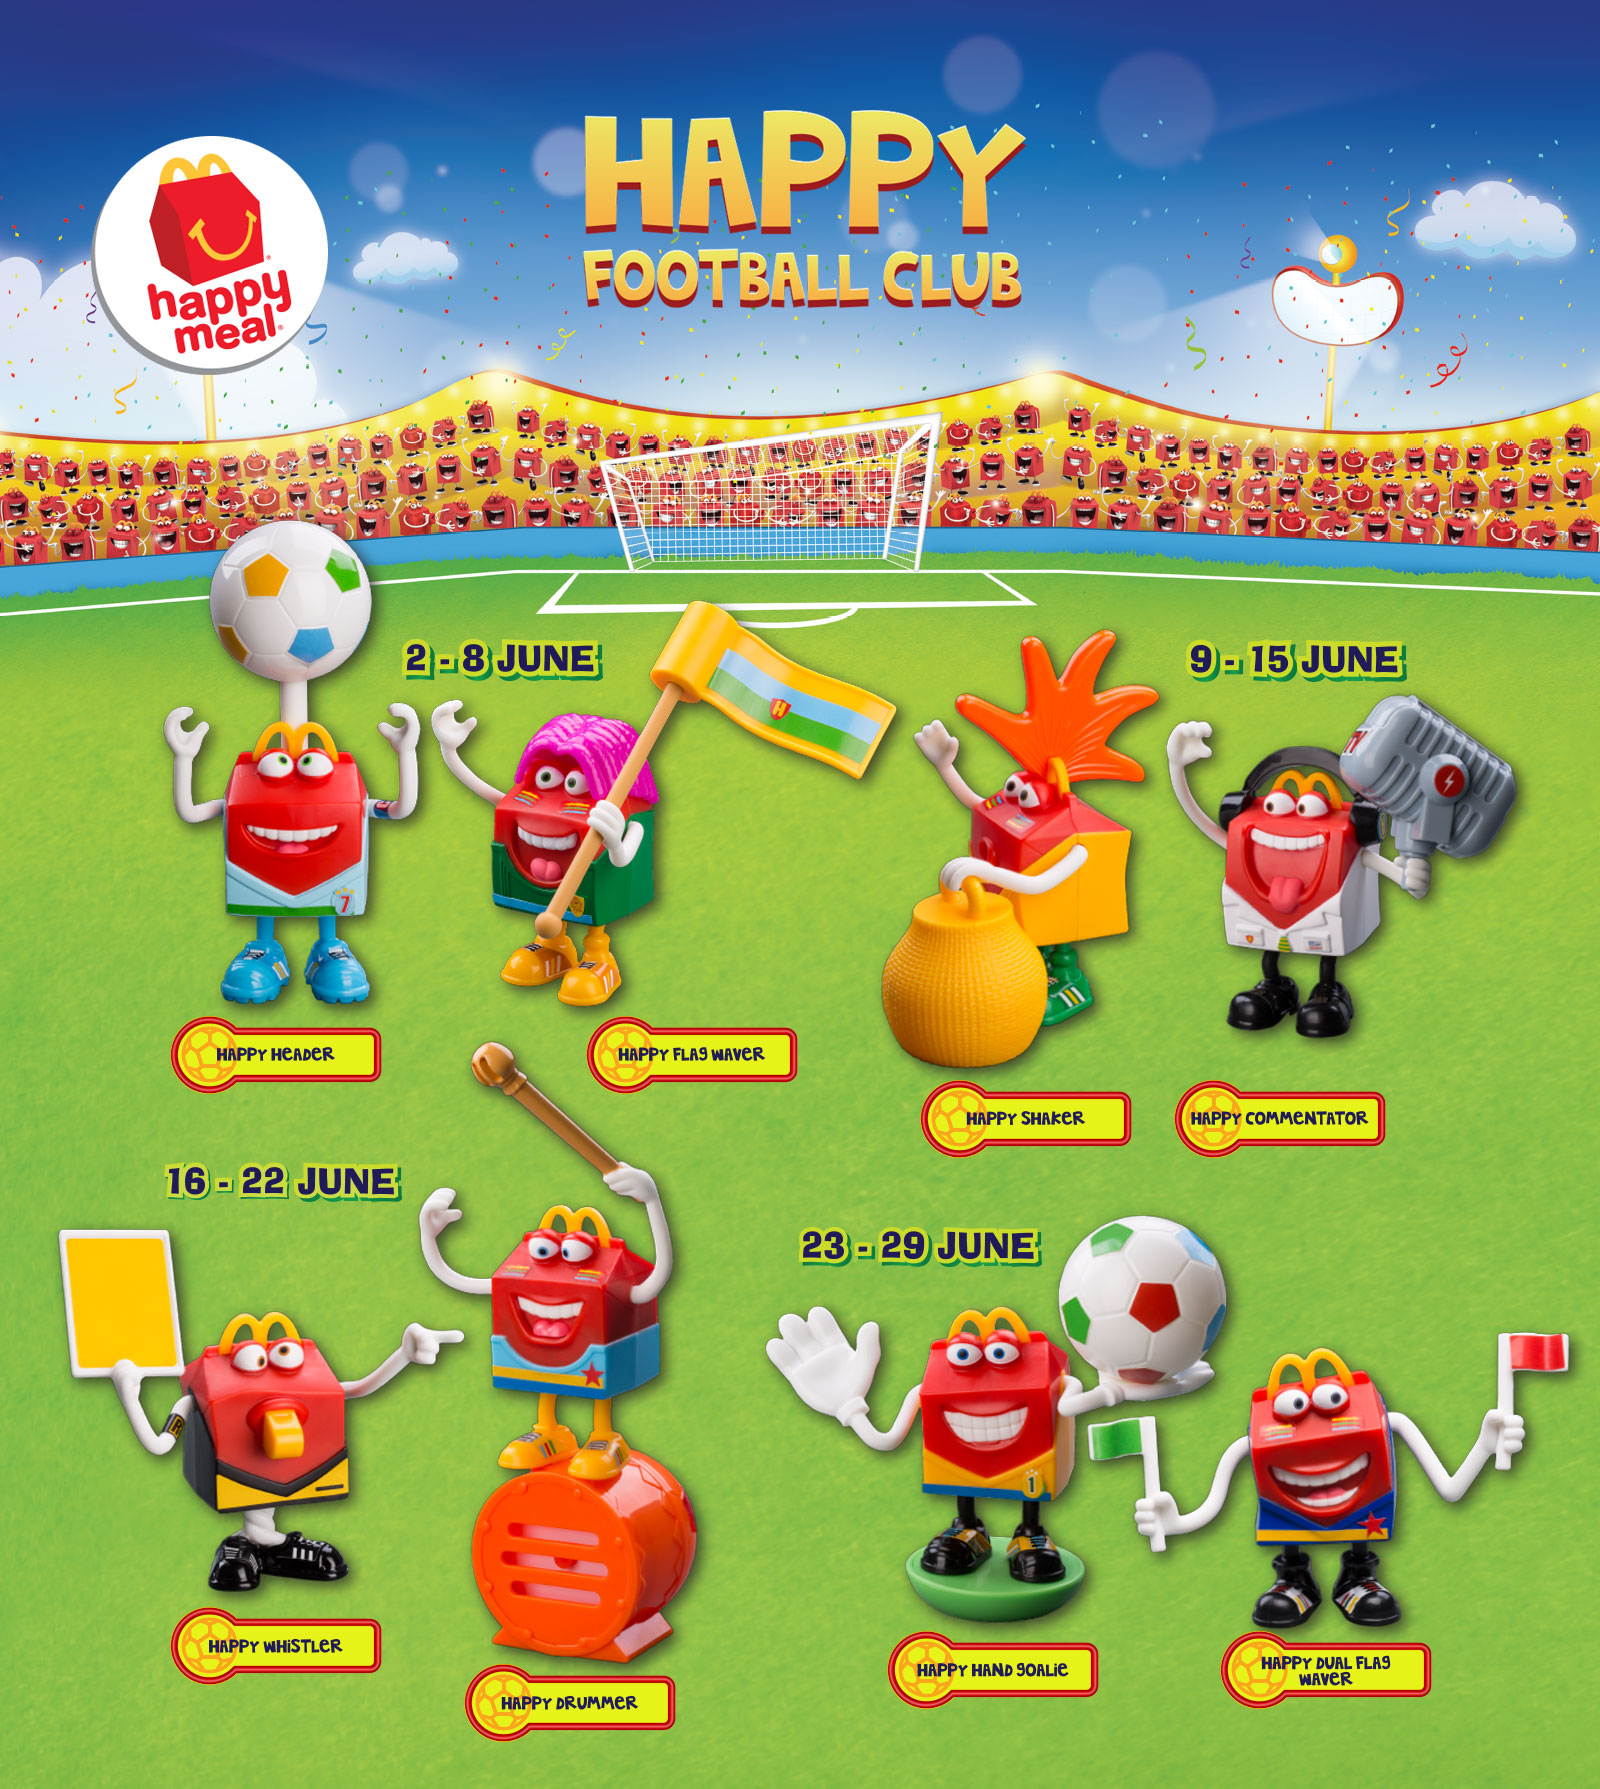 Happy Meal Toys : Free mcdonald s the happy football club meal toy